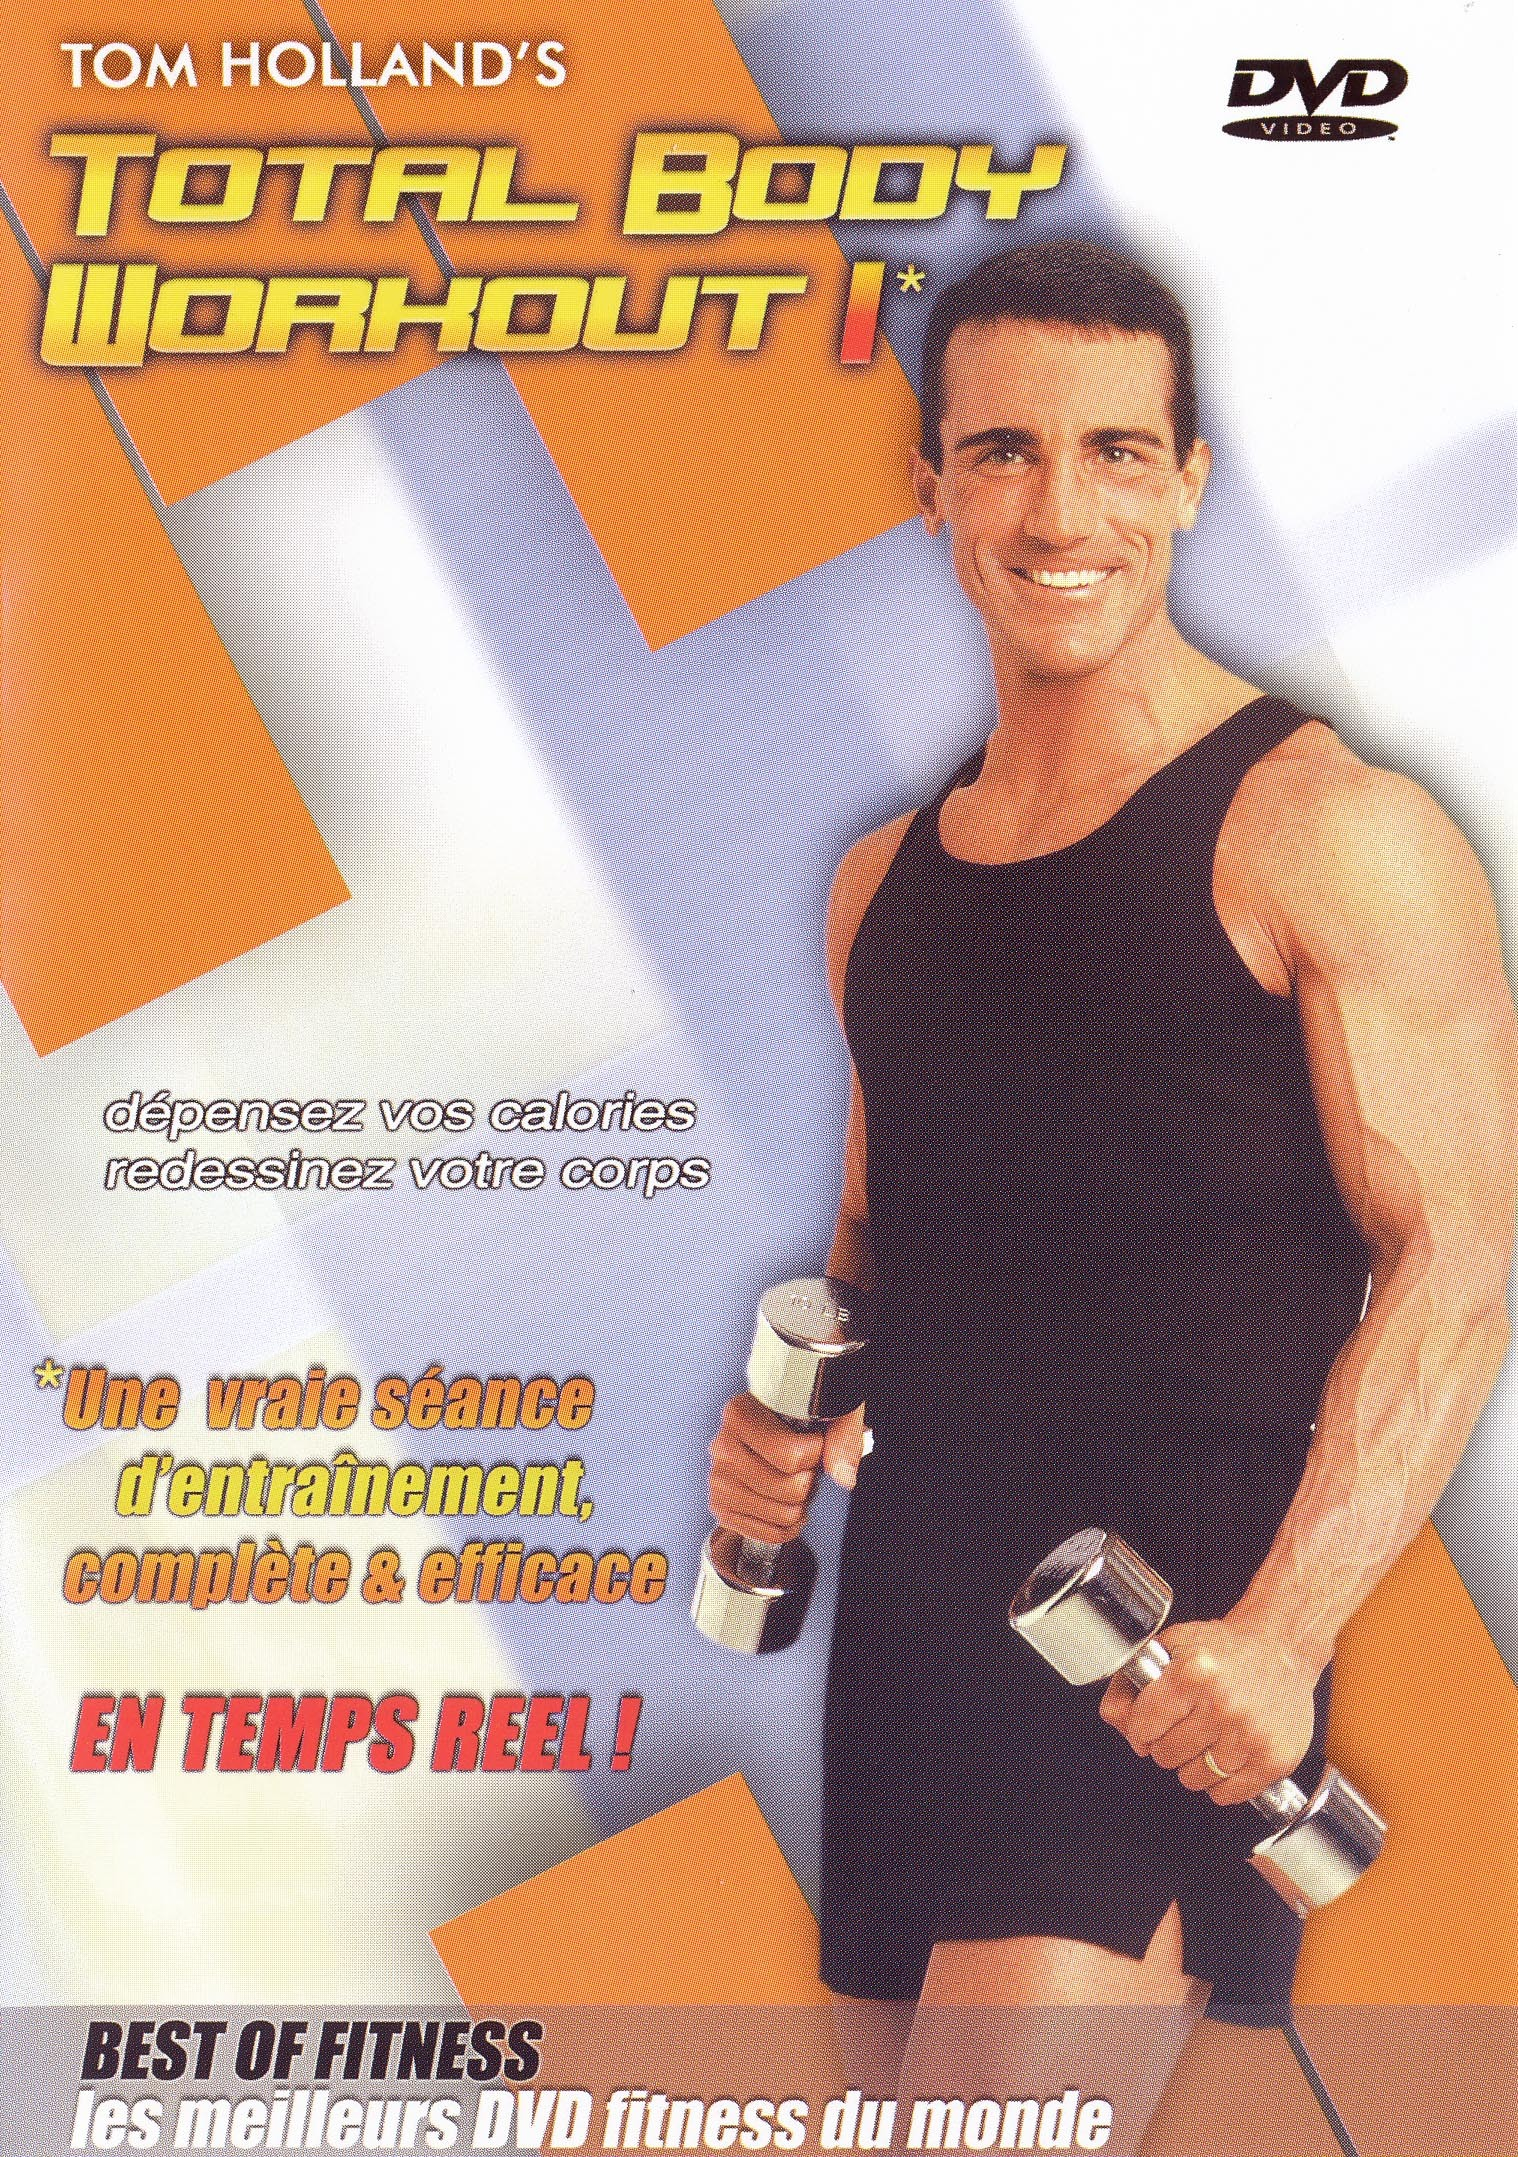 TOTAL BODY WORKOUT I - DVD  TOM HOLLAND'S